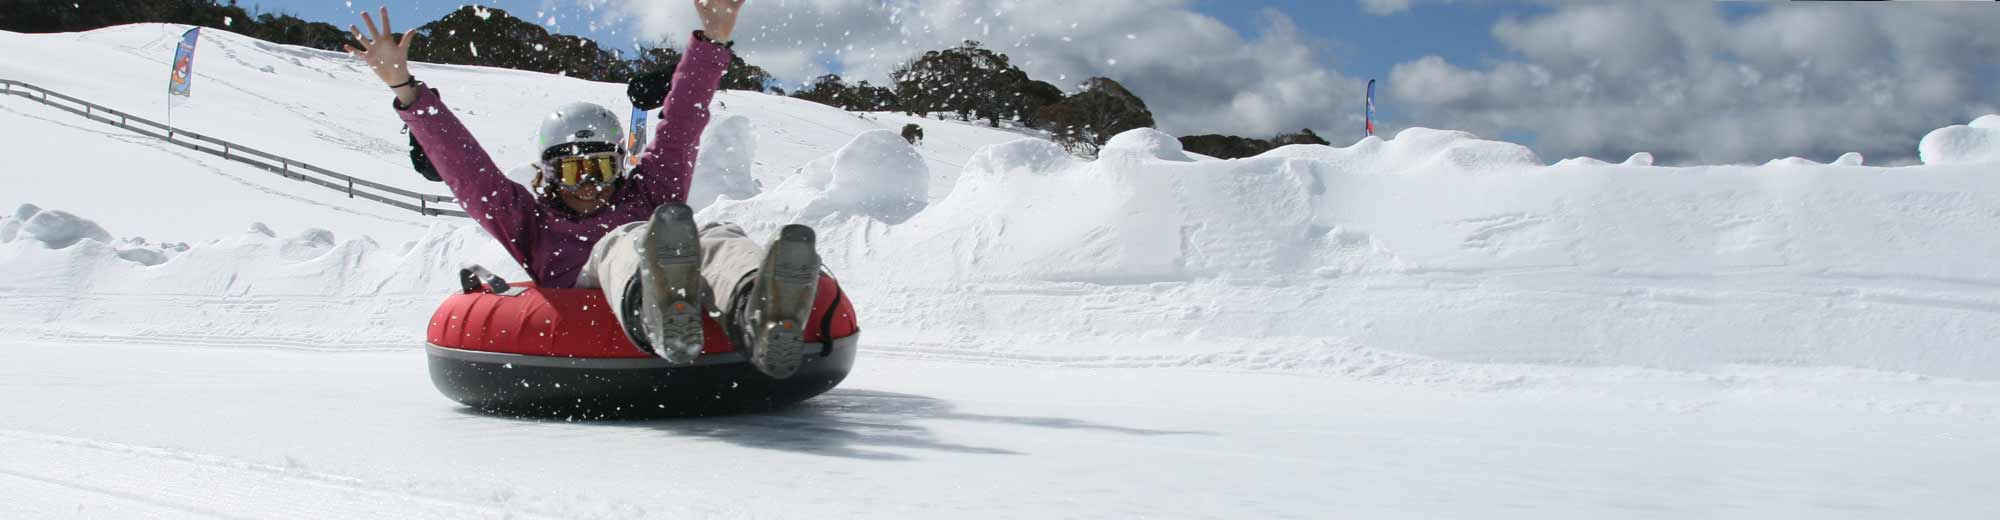 things to do in the snowy mountains